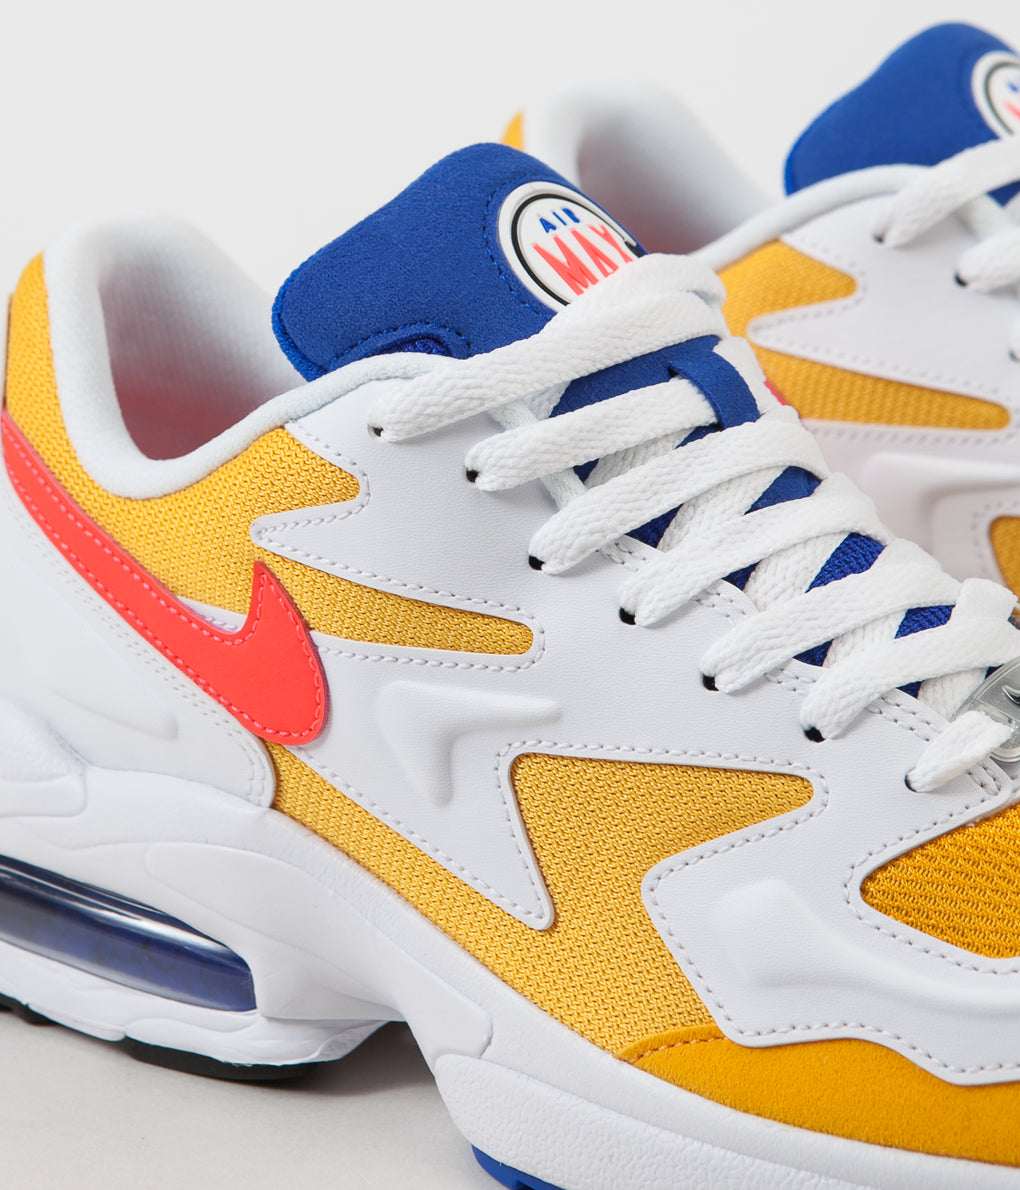 Nike Air Max 2 Light Shoes - University Gold / Flash Crimson - Racer Blue